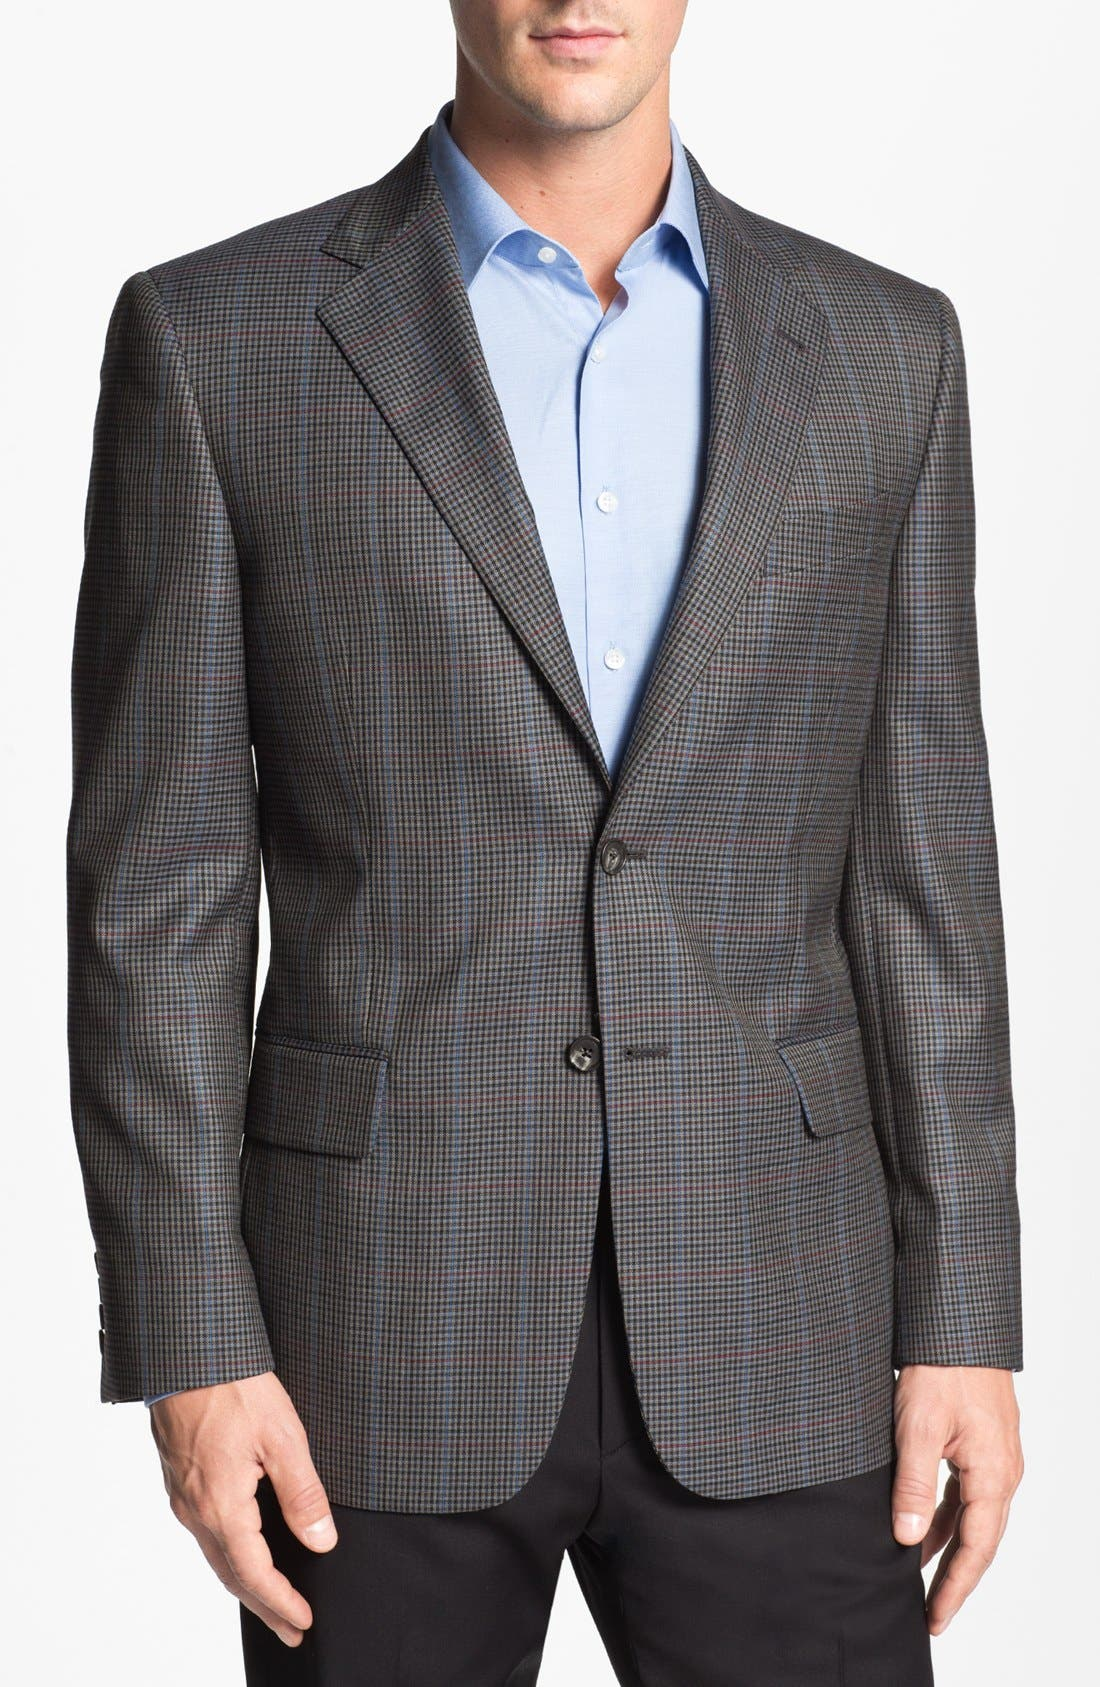 Alternate Image 1 Selected - Joseph Abboud 'Signature Silver' Check Wool Sportcoat